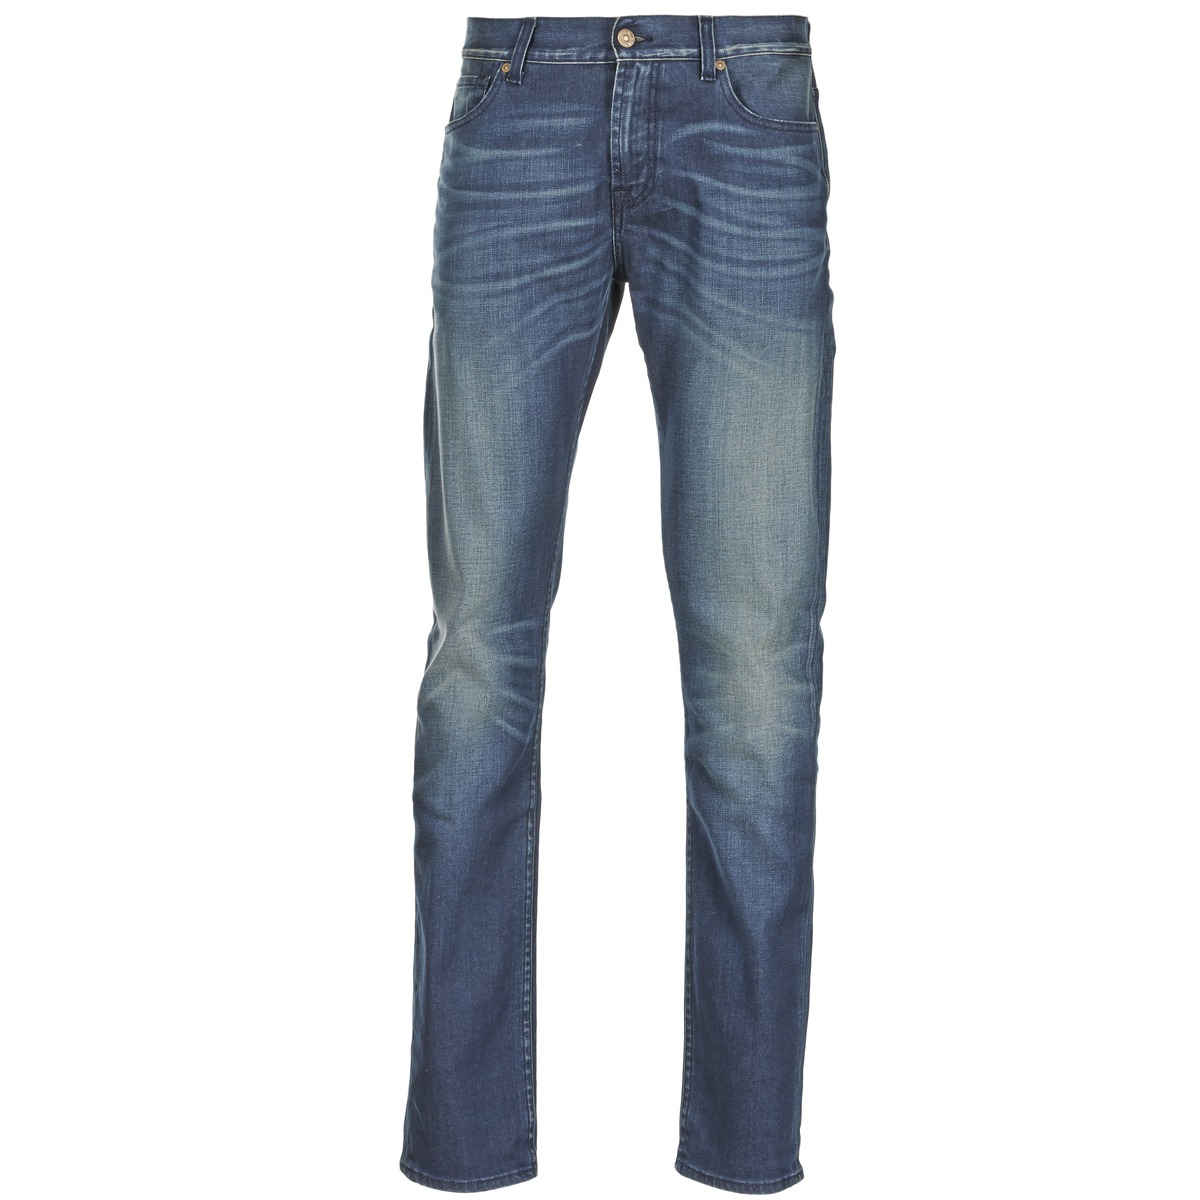 7 for all Mankind RONNIE ELECTRIC MIND Blue / MEDIUM